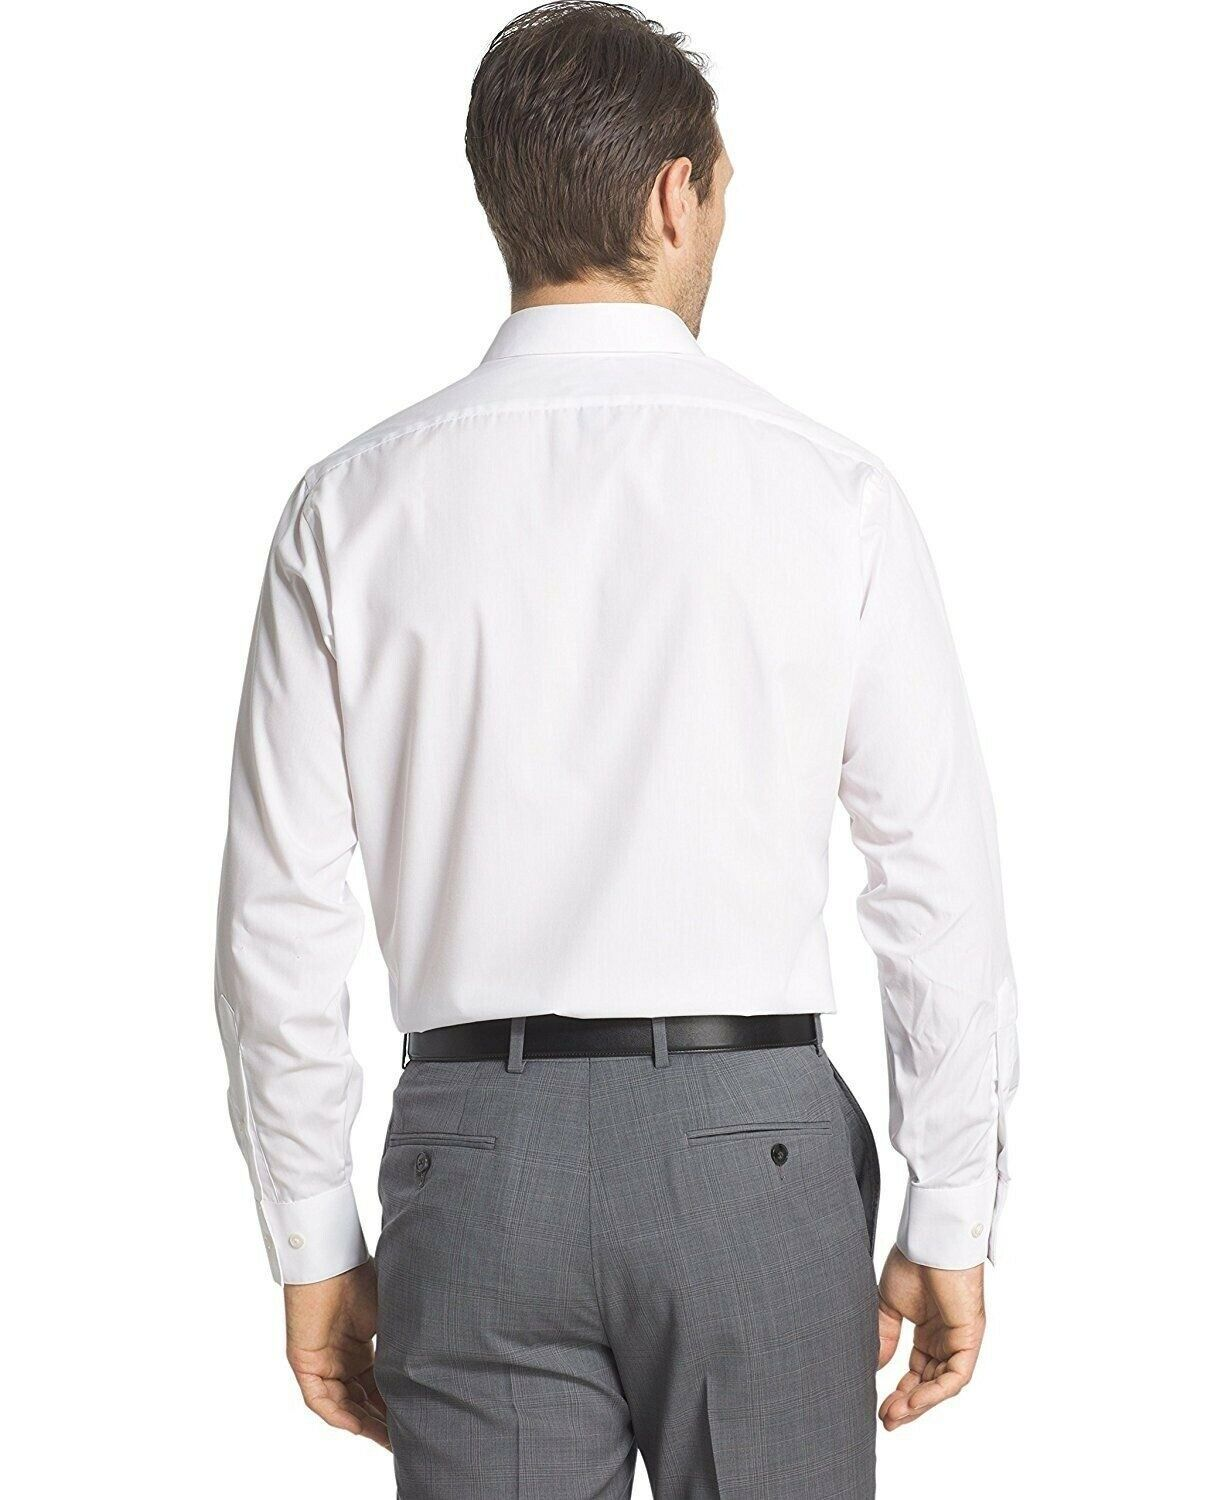 BERLIONI-ITALY-MEN-039-S-PRIME-FRENCH-CONVERTIBLE-CUFF-SOLID-DRESS-SHIRT-WHITE thumbnail 39